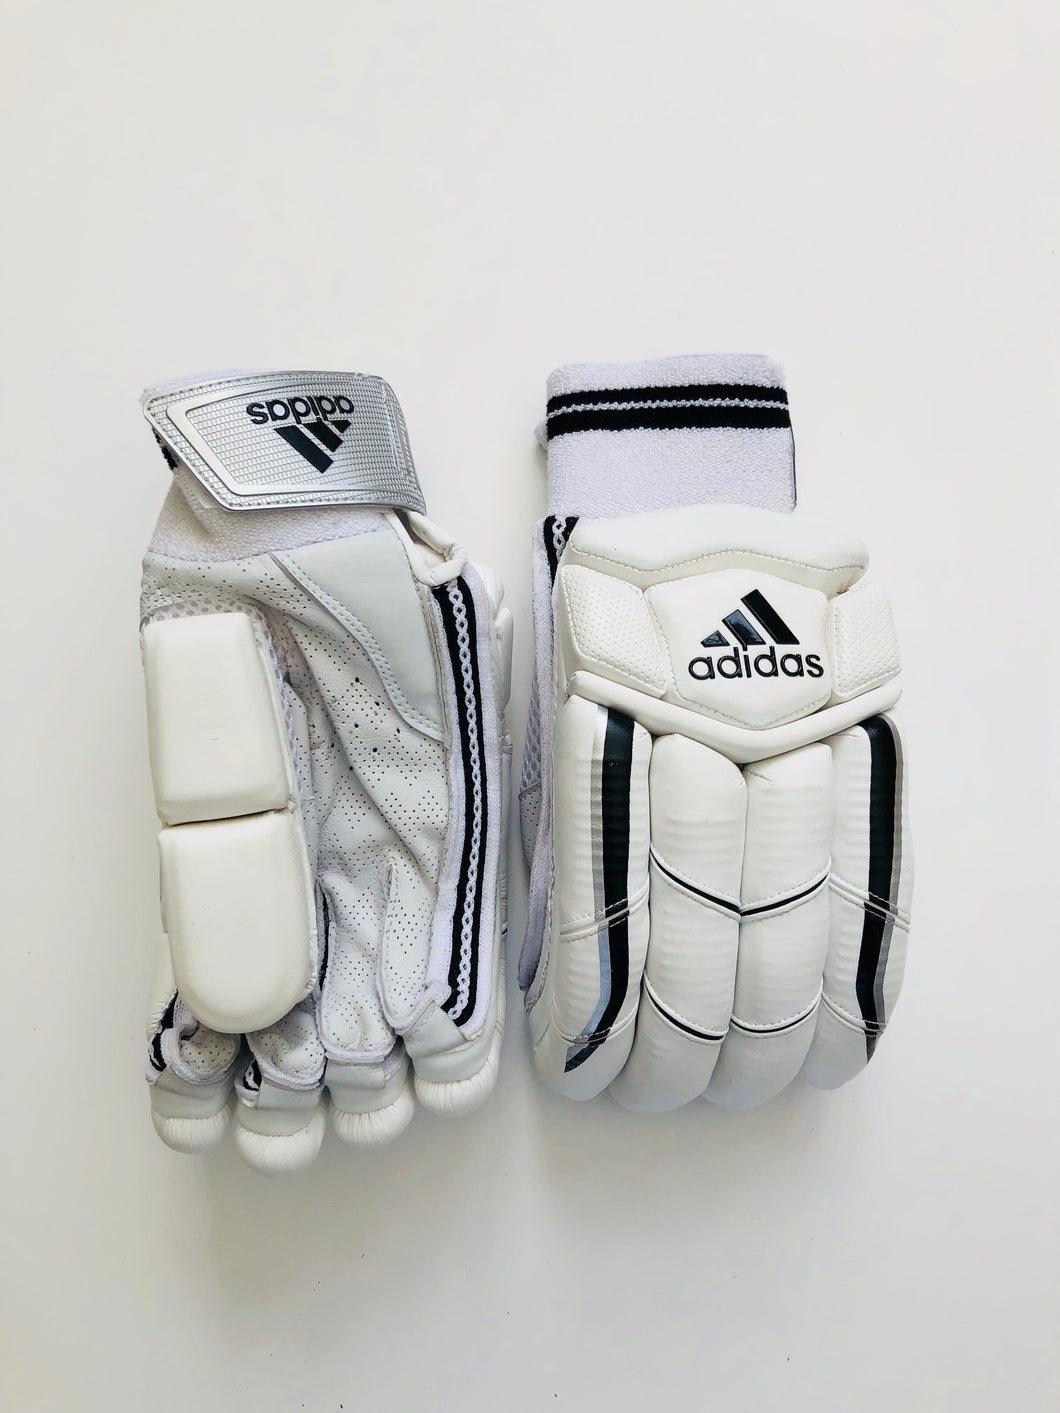 Adidas XT 2.0 Edition Cricket Batting Gloves - DKP Cricket Online